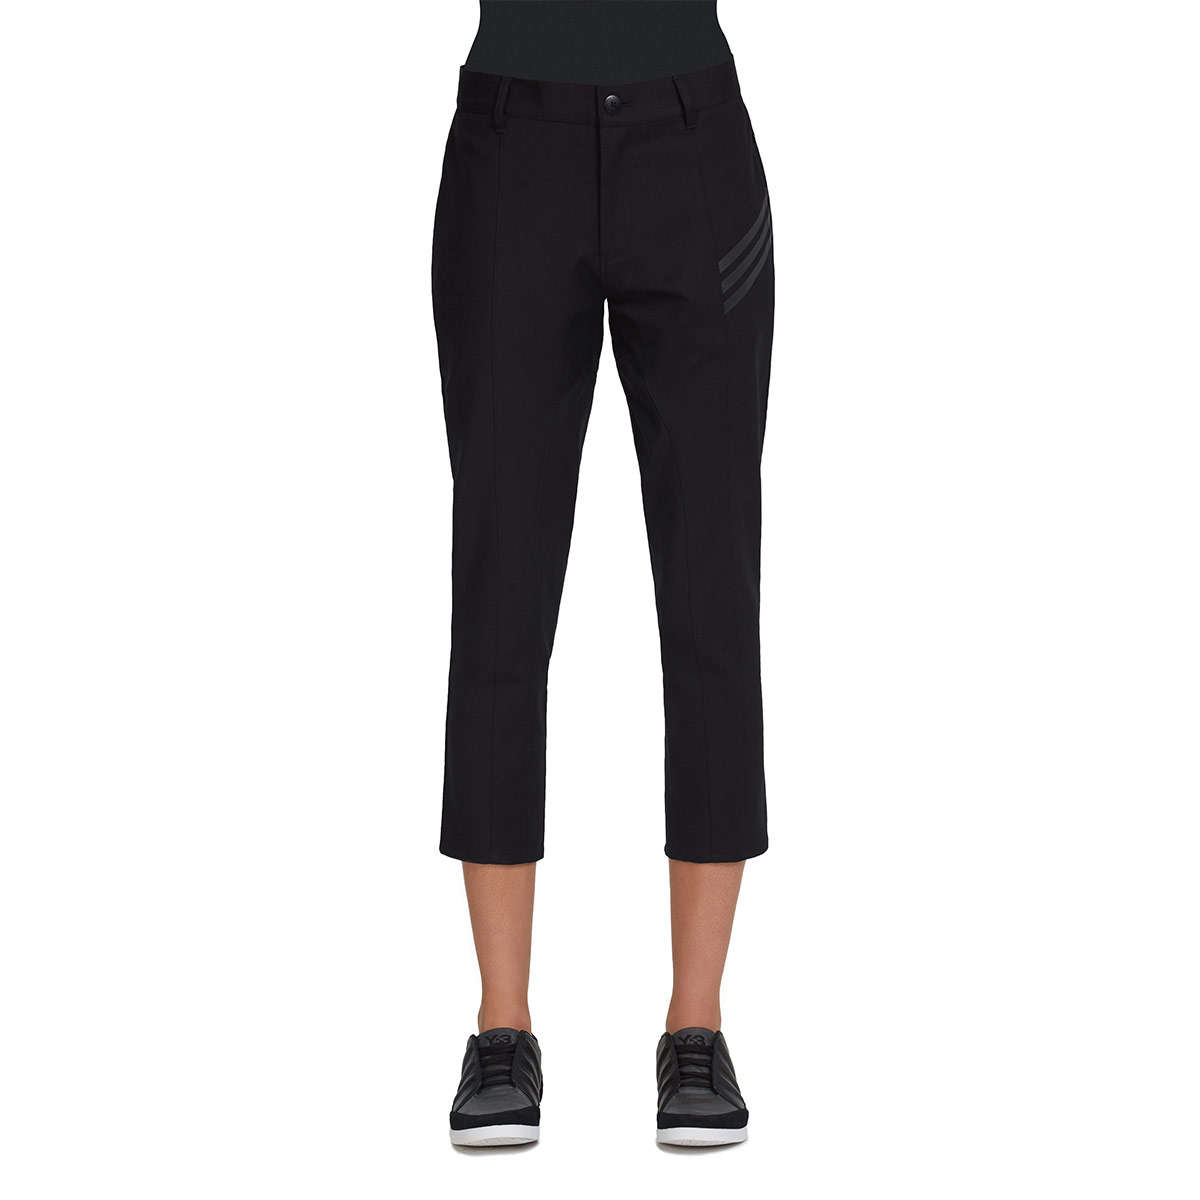 4707a482775 Chubby genuine counter purchase Y - 3 W CANVAS 3S PANT B47592 Y3 women 9  points casual pants